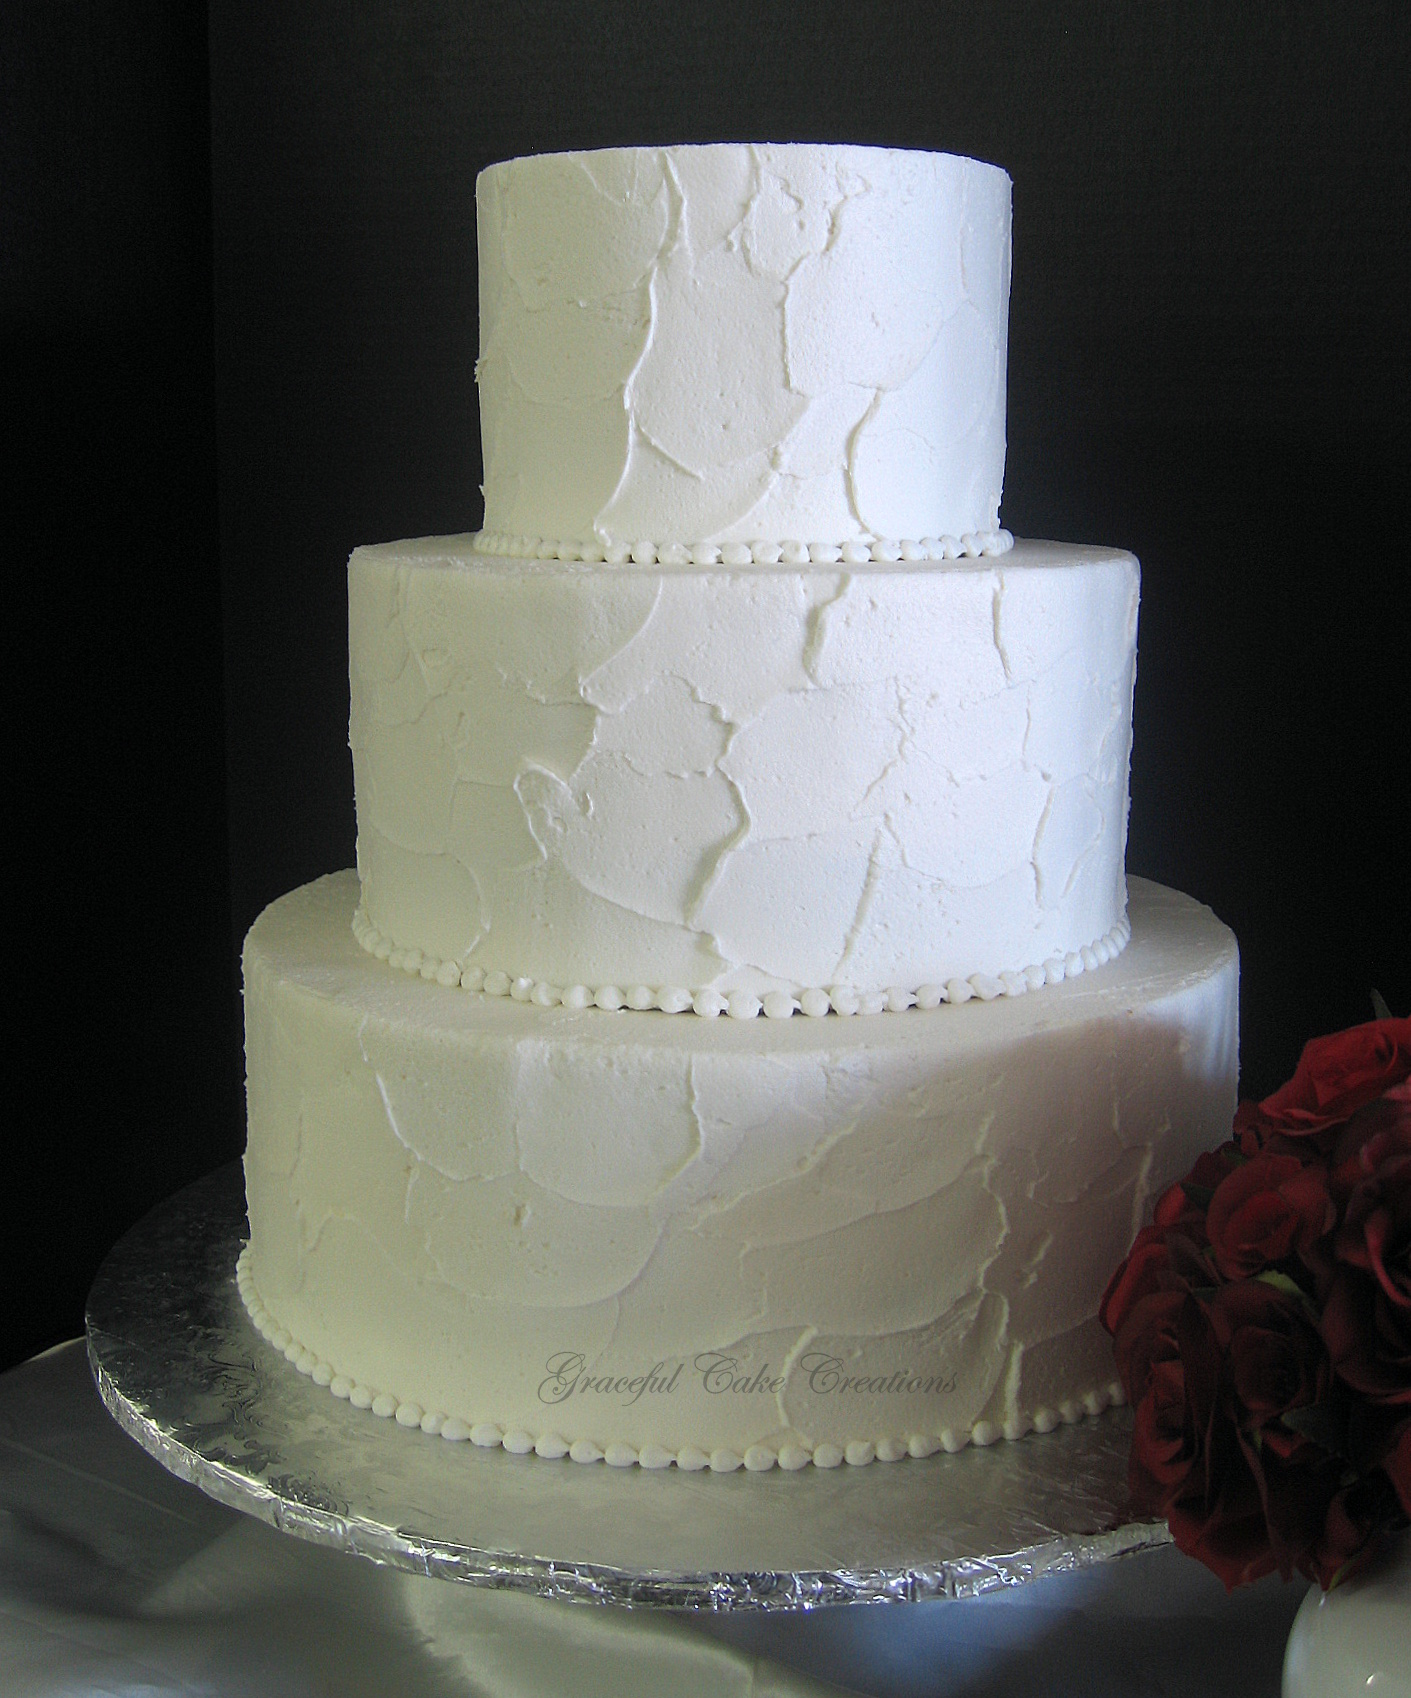 Simple Elegant Textured Buttercream Wedding Cake  Flickr  Photo Sharing